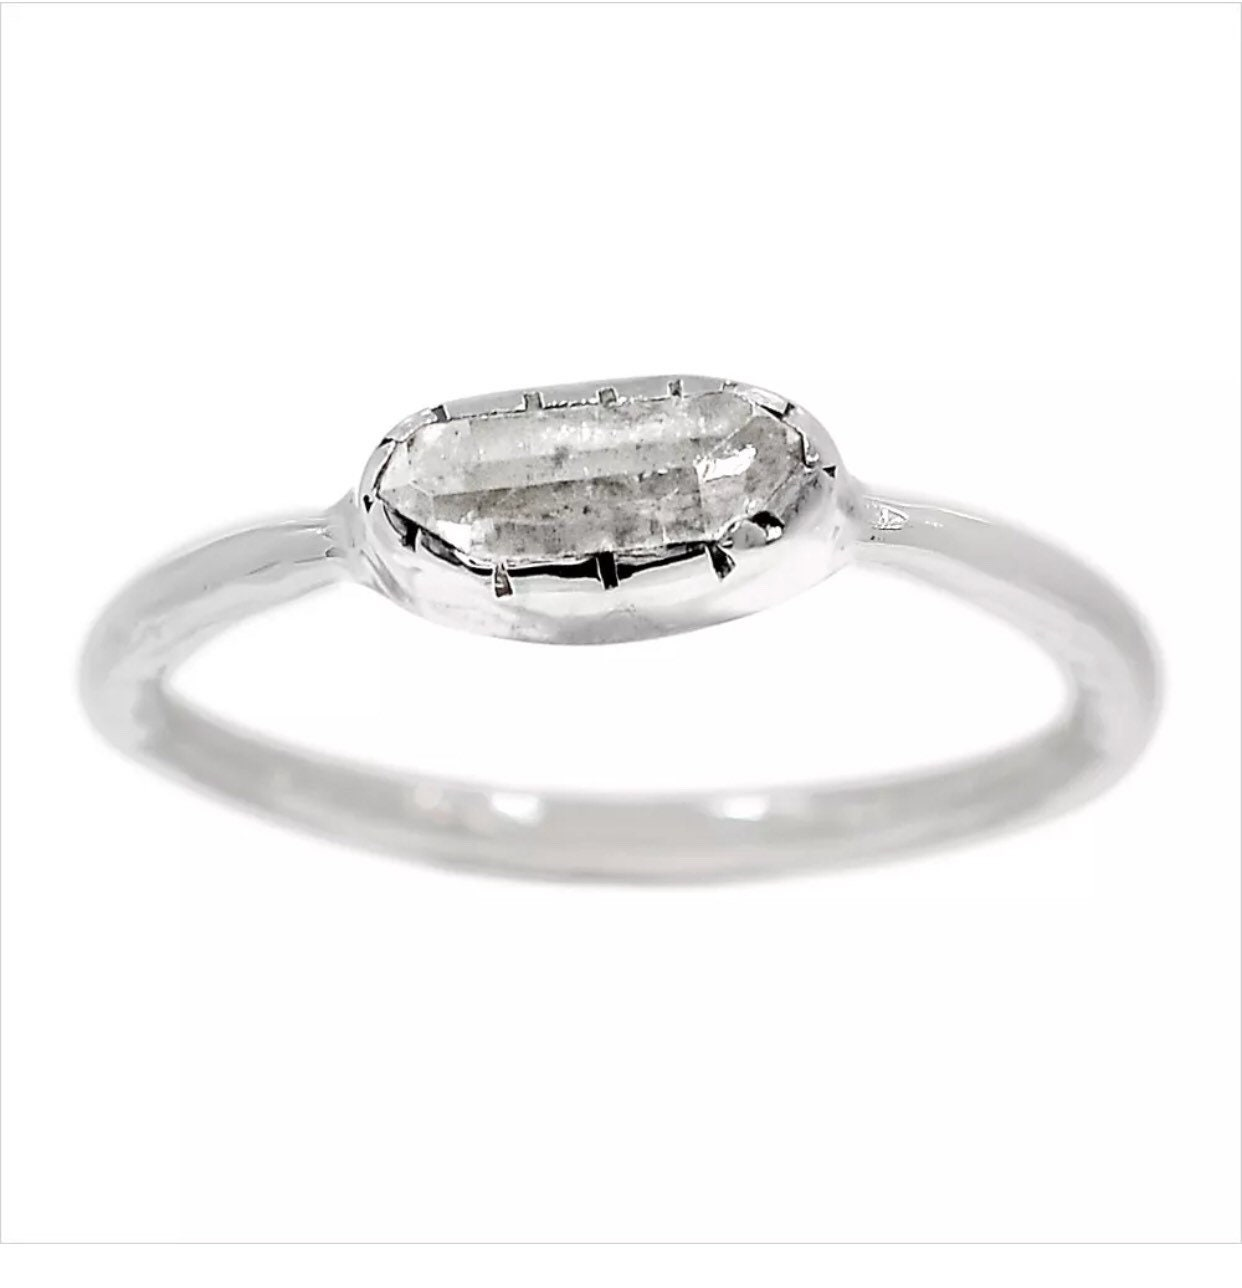 HERKIMER Diamond Bali Style Dainty Ring in 925 Silver SIZE